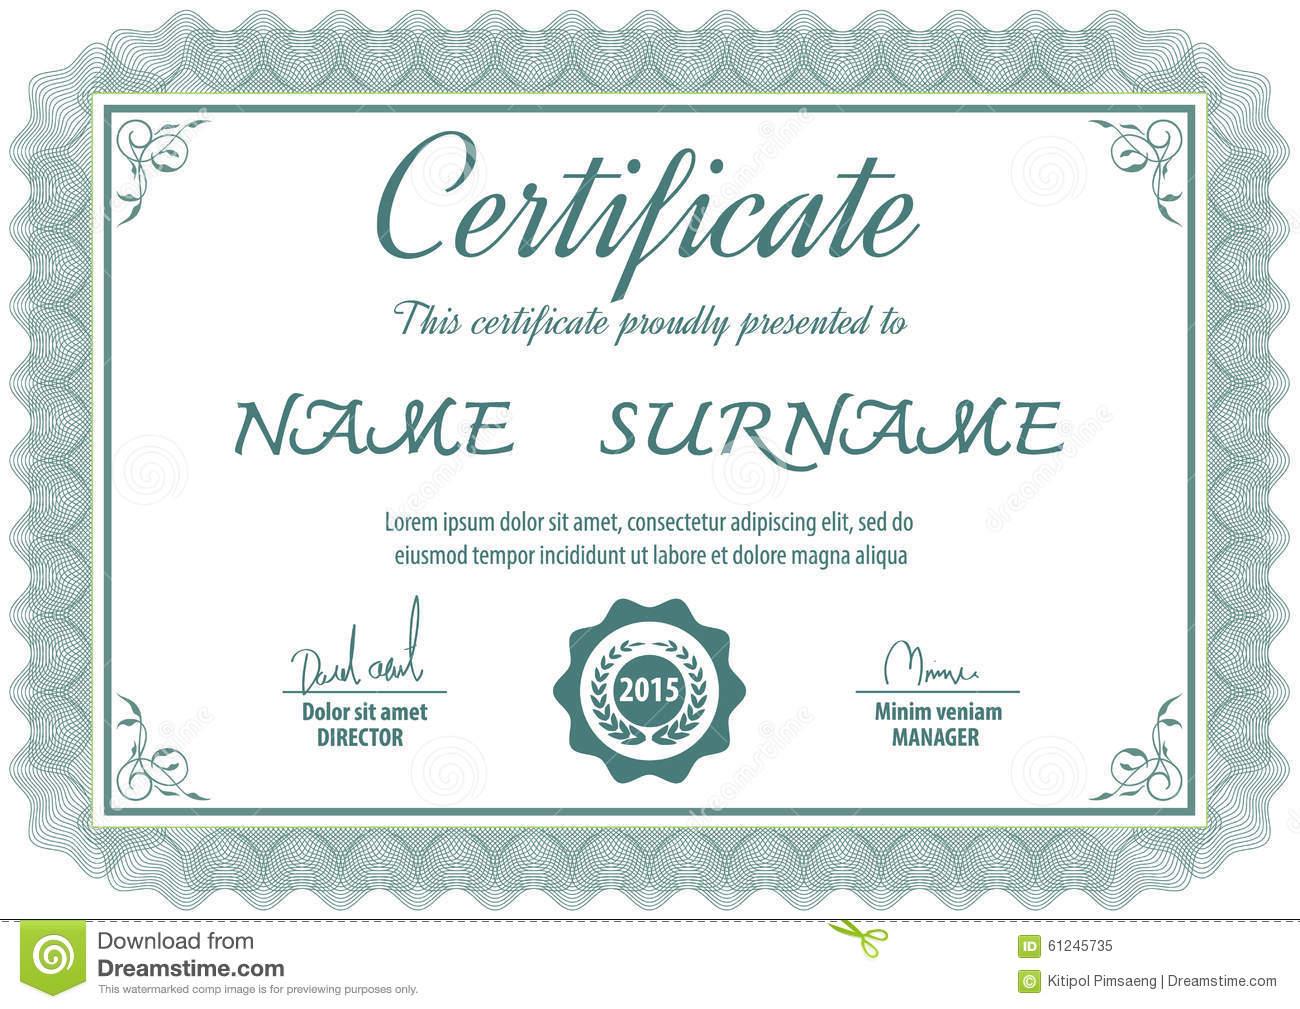 Certificate templatevector illustration stock vector image certificate templatevector illustration xflitez Gallery